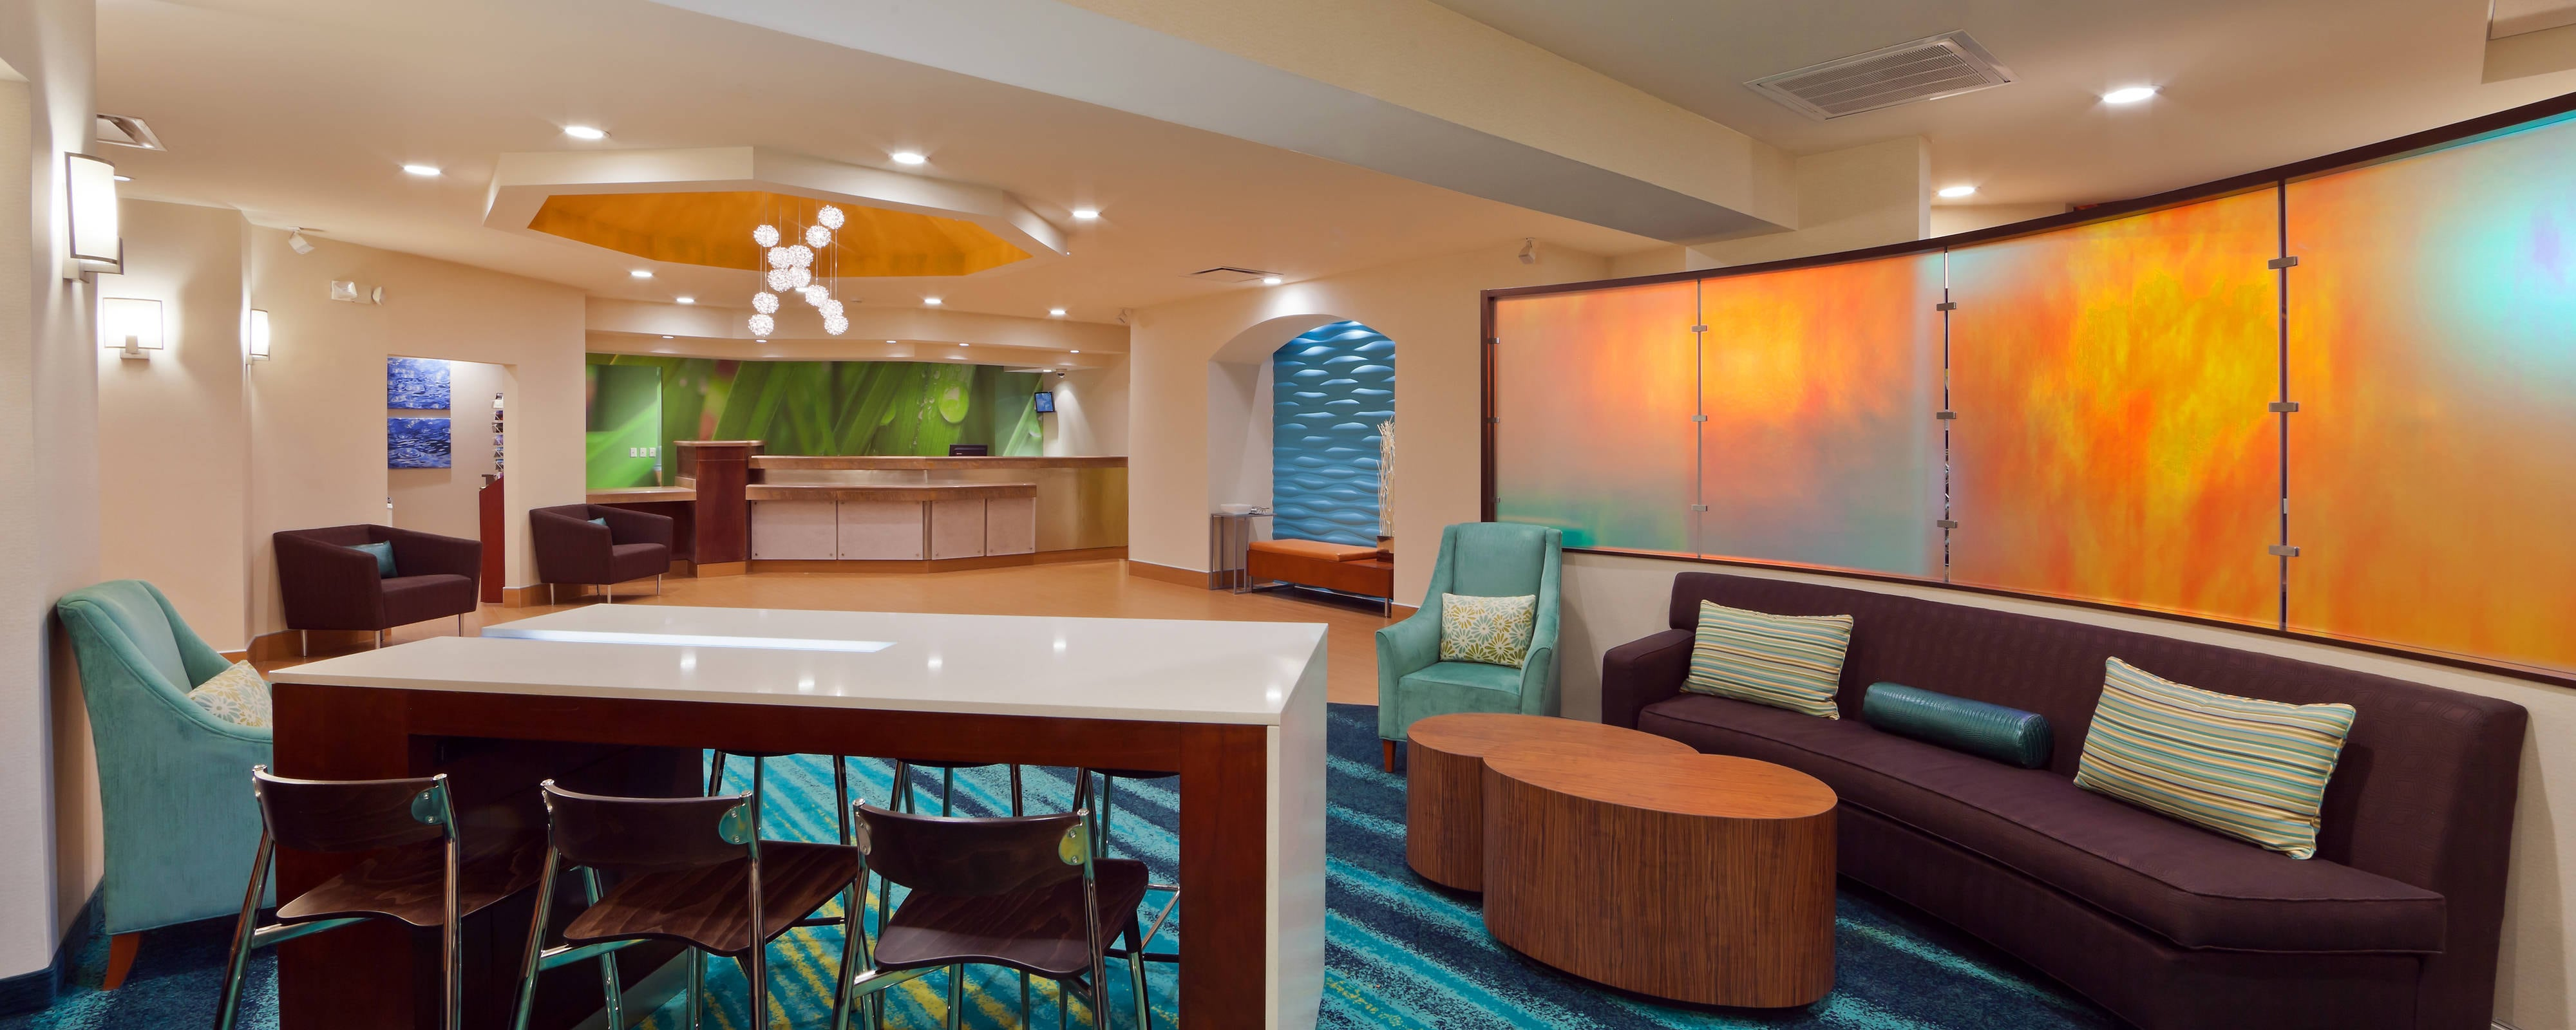 Springhill Suites Westminster Lobby